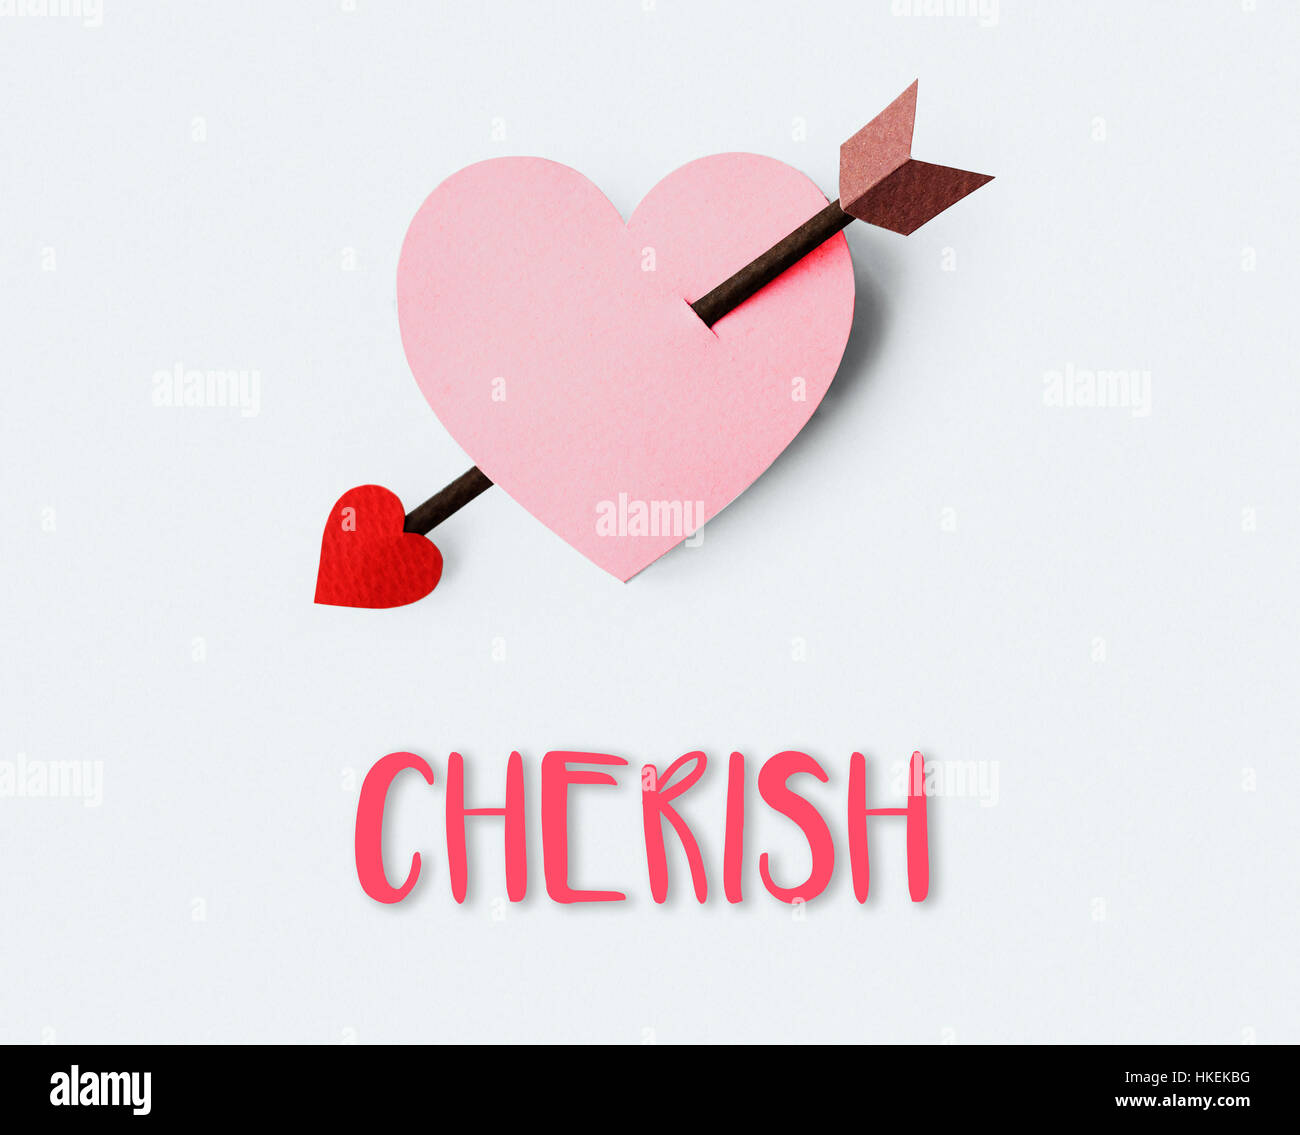 Love Yearning Affection Cherish Tenderness Concept - Stock Image